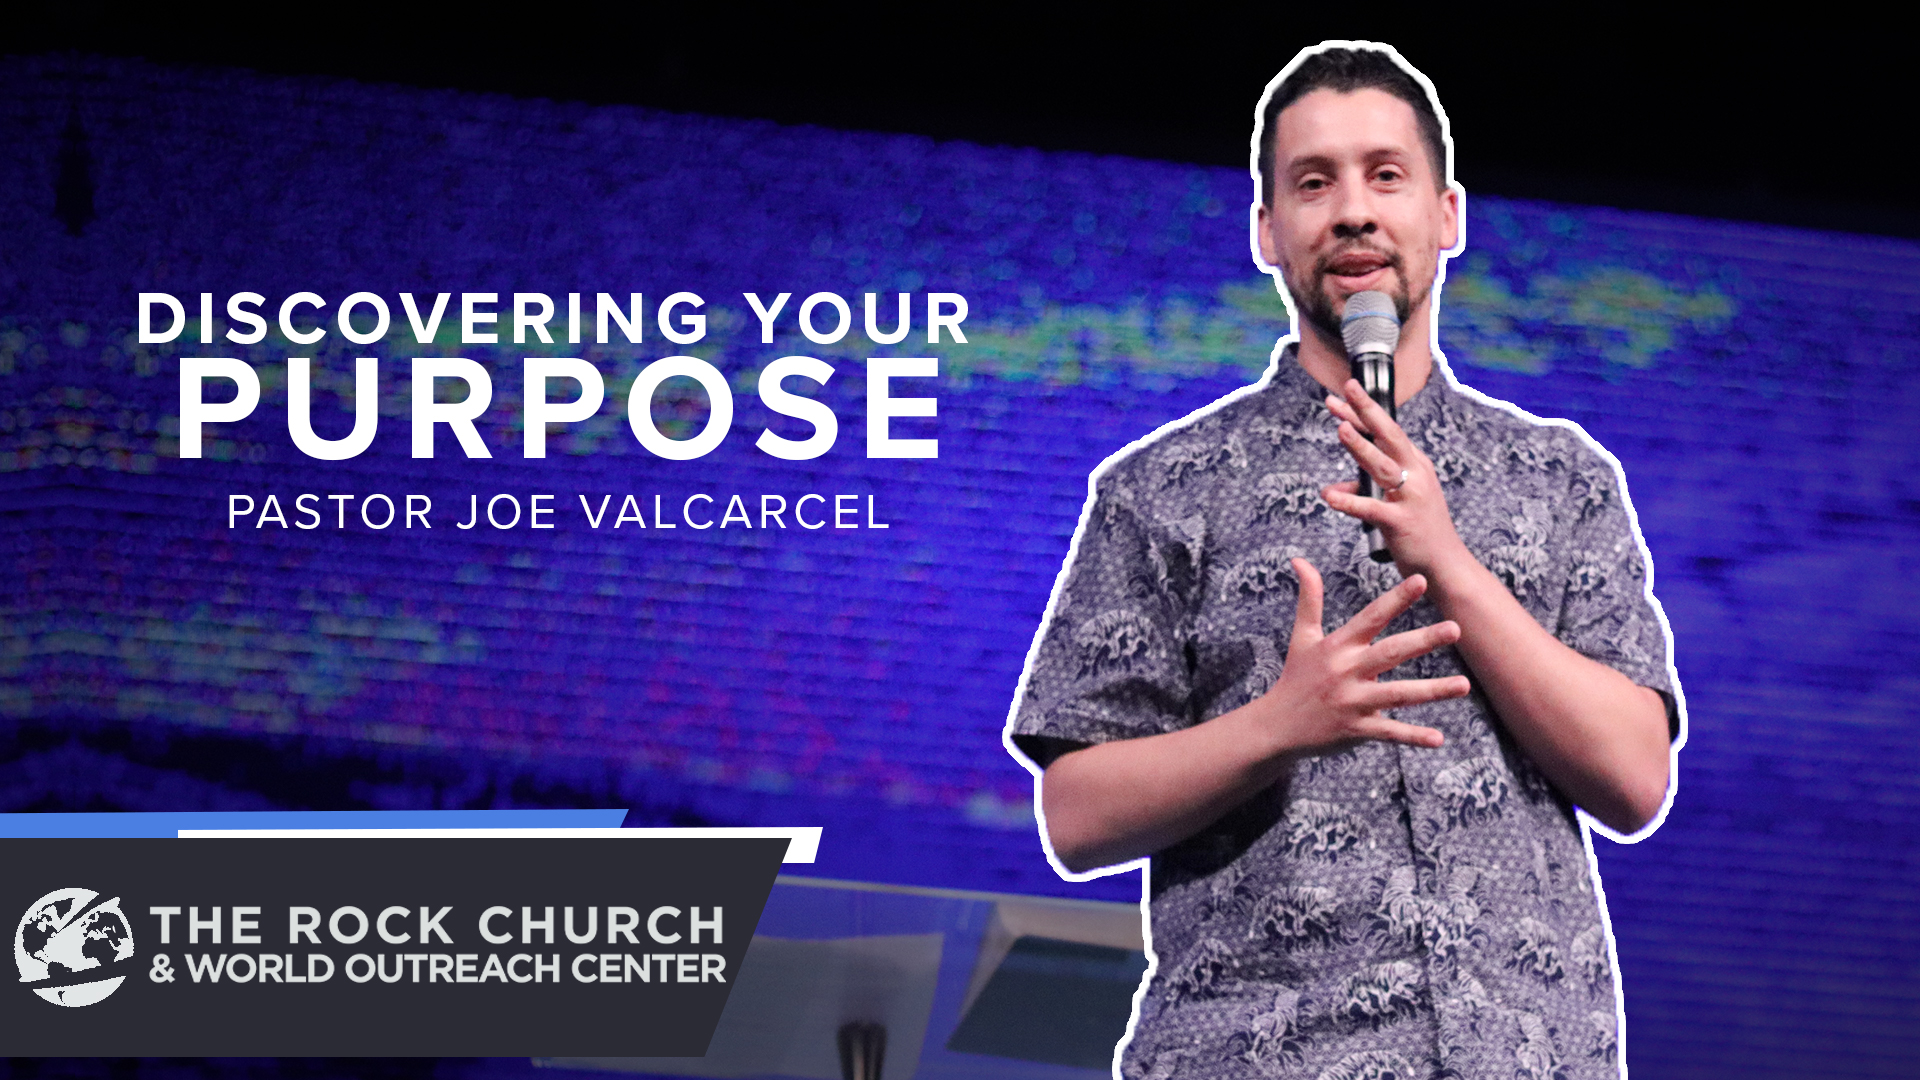 Watch Discovering Your Purpose